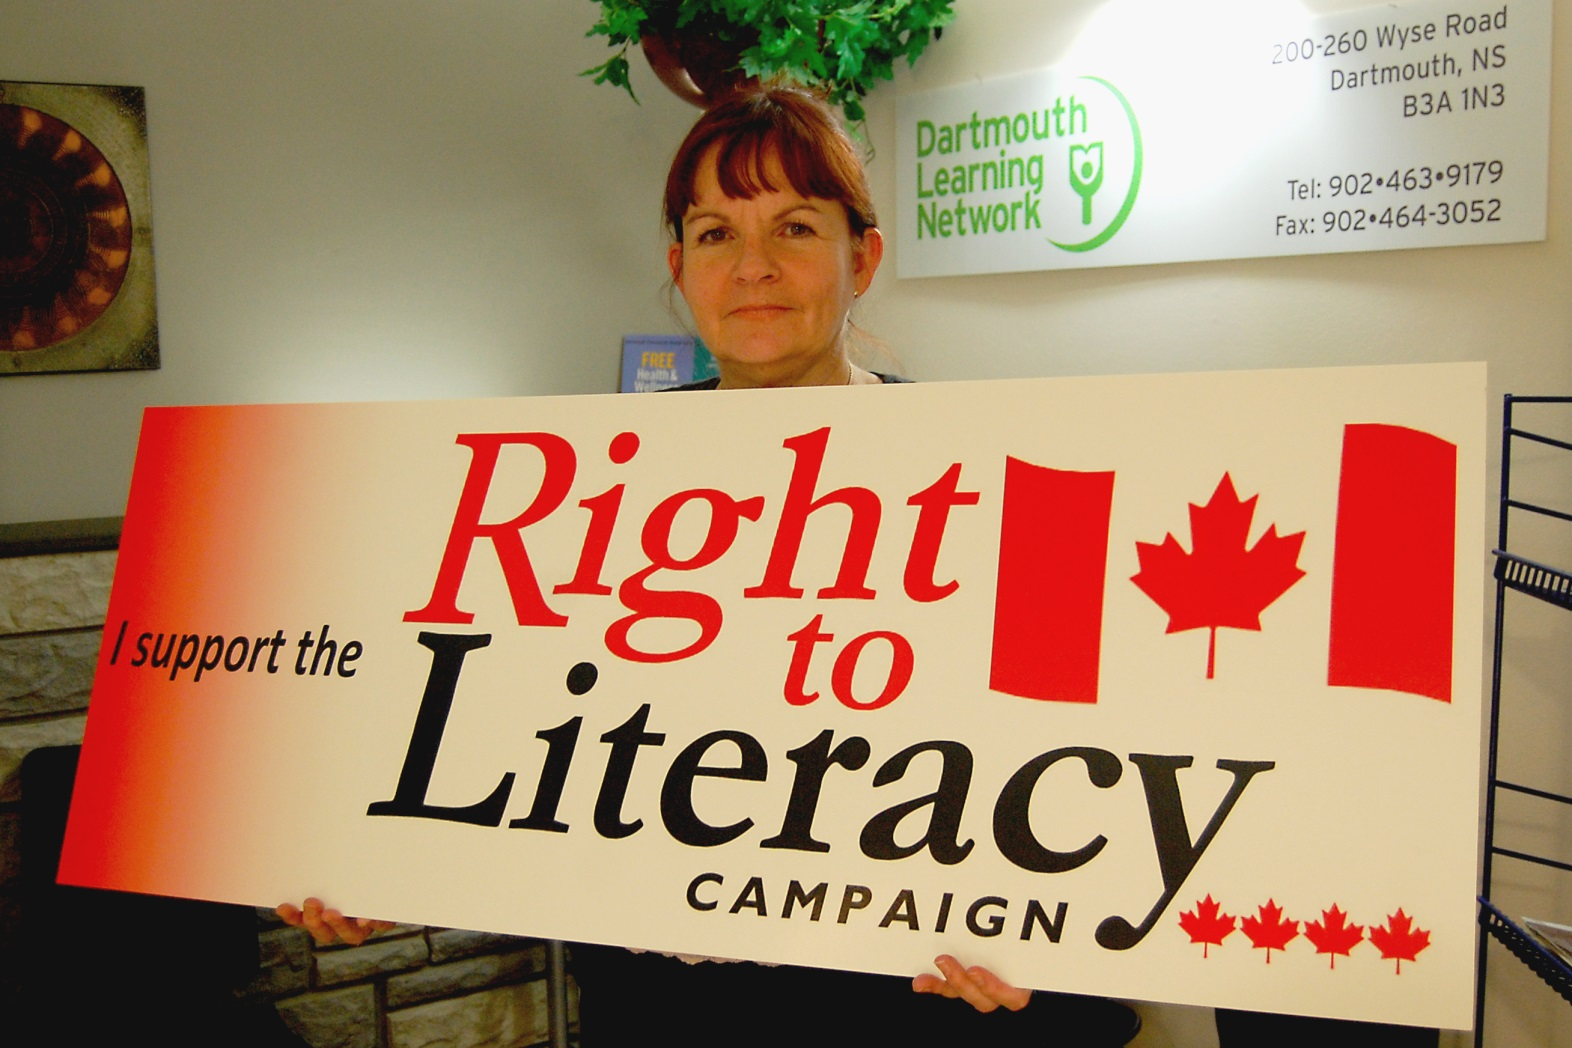 A Nova Scotia Champion for Literacy by Sarah Dobson Dartmouth Learning Network Volunteer